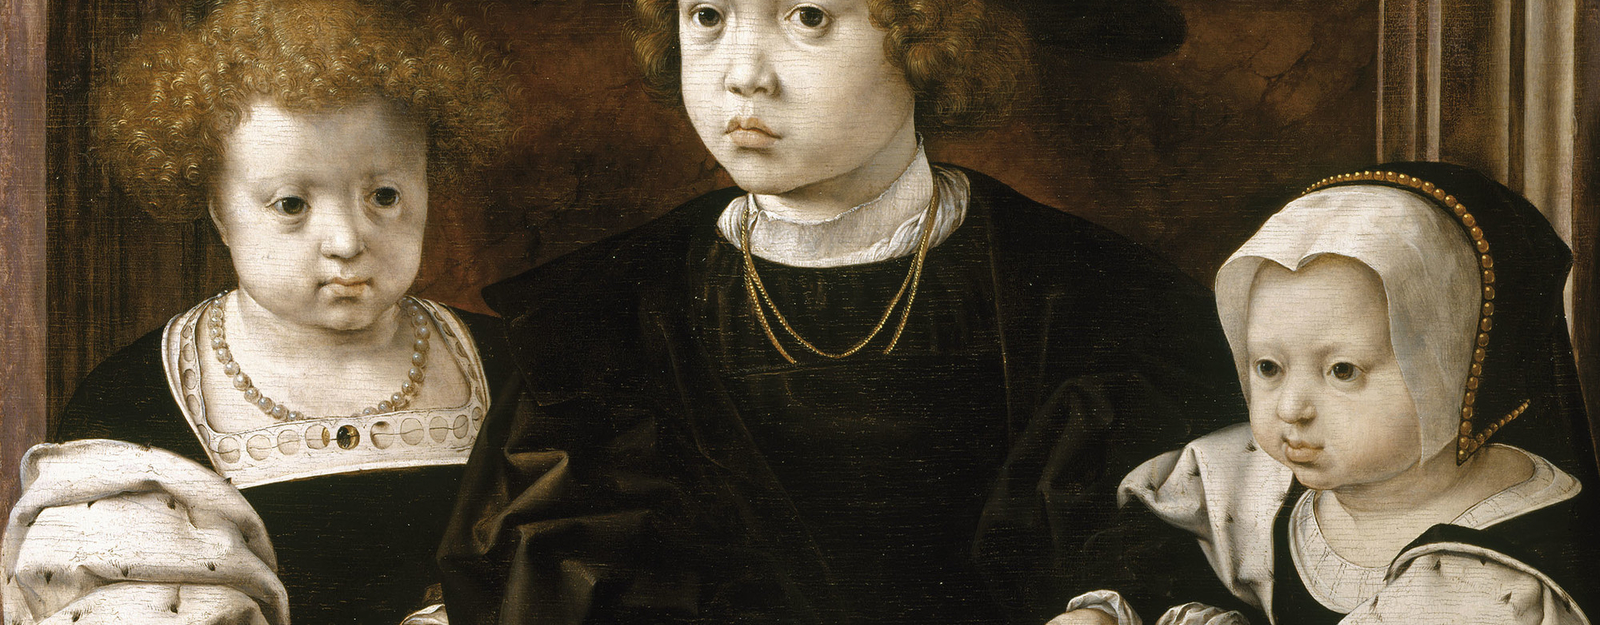 On 19 January 1526 Isabella of Habsburg, Queen of Denmark and sister of the Emperor Charles V, died, leaving behind her three children: John, aged 7; Dorothea, aged 5; and Christina, aged 3. This portrait was painted the same year and was perhaps commissi